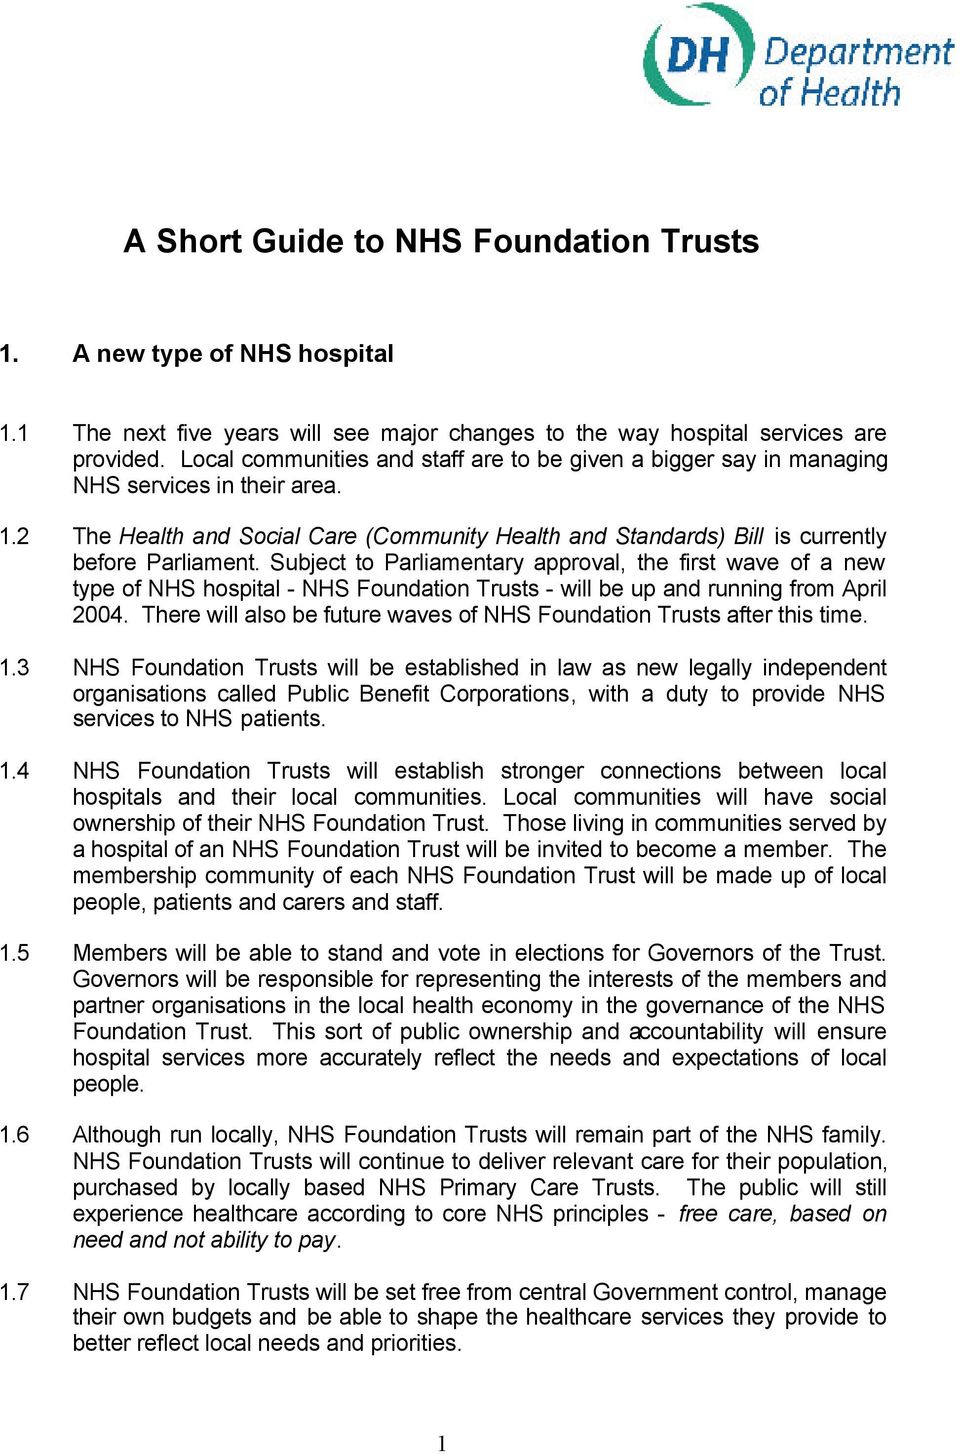 Subject to Parliamentary approval, the first wave of a new type of NHS hospital - NHS Foundation Trusts - will be up and running from April 2004.